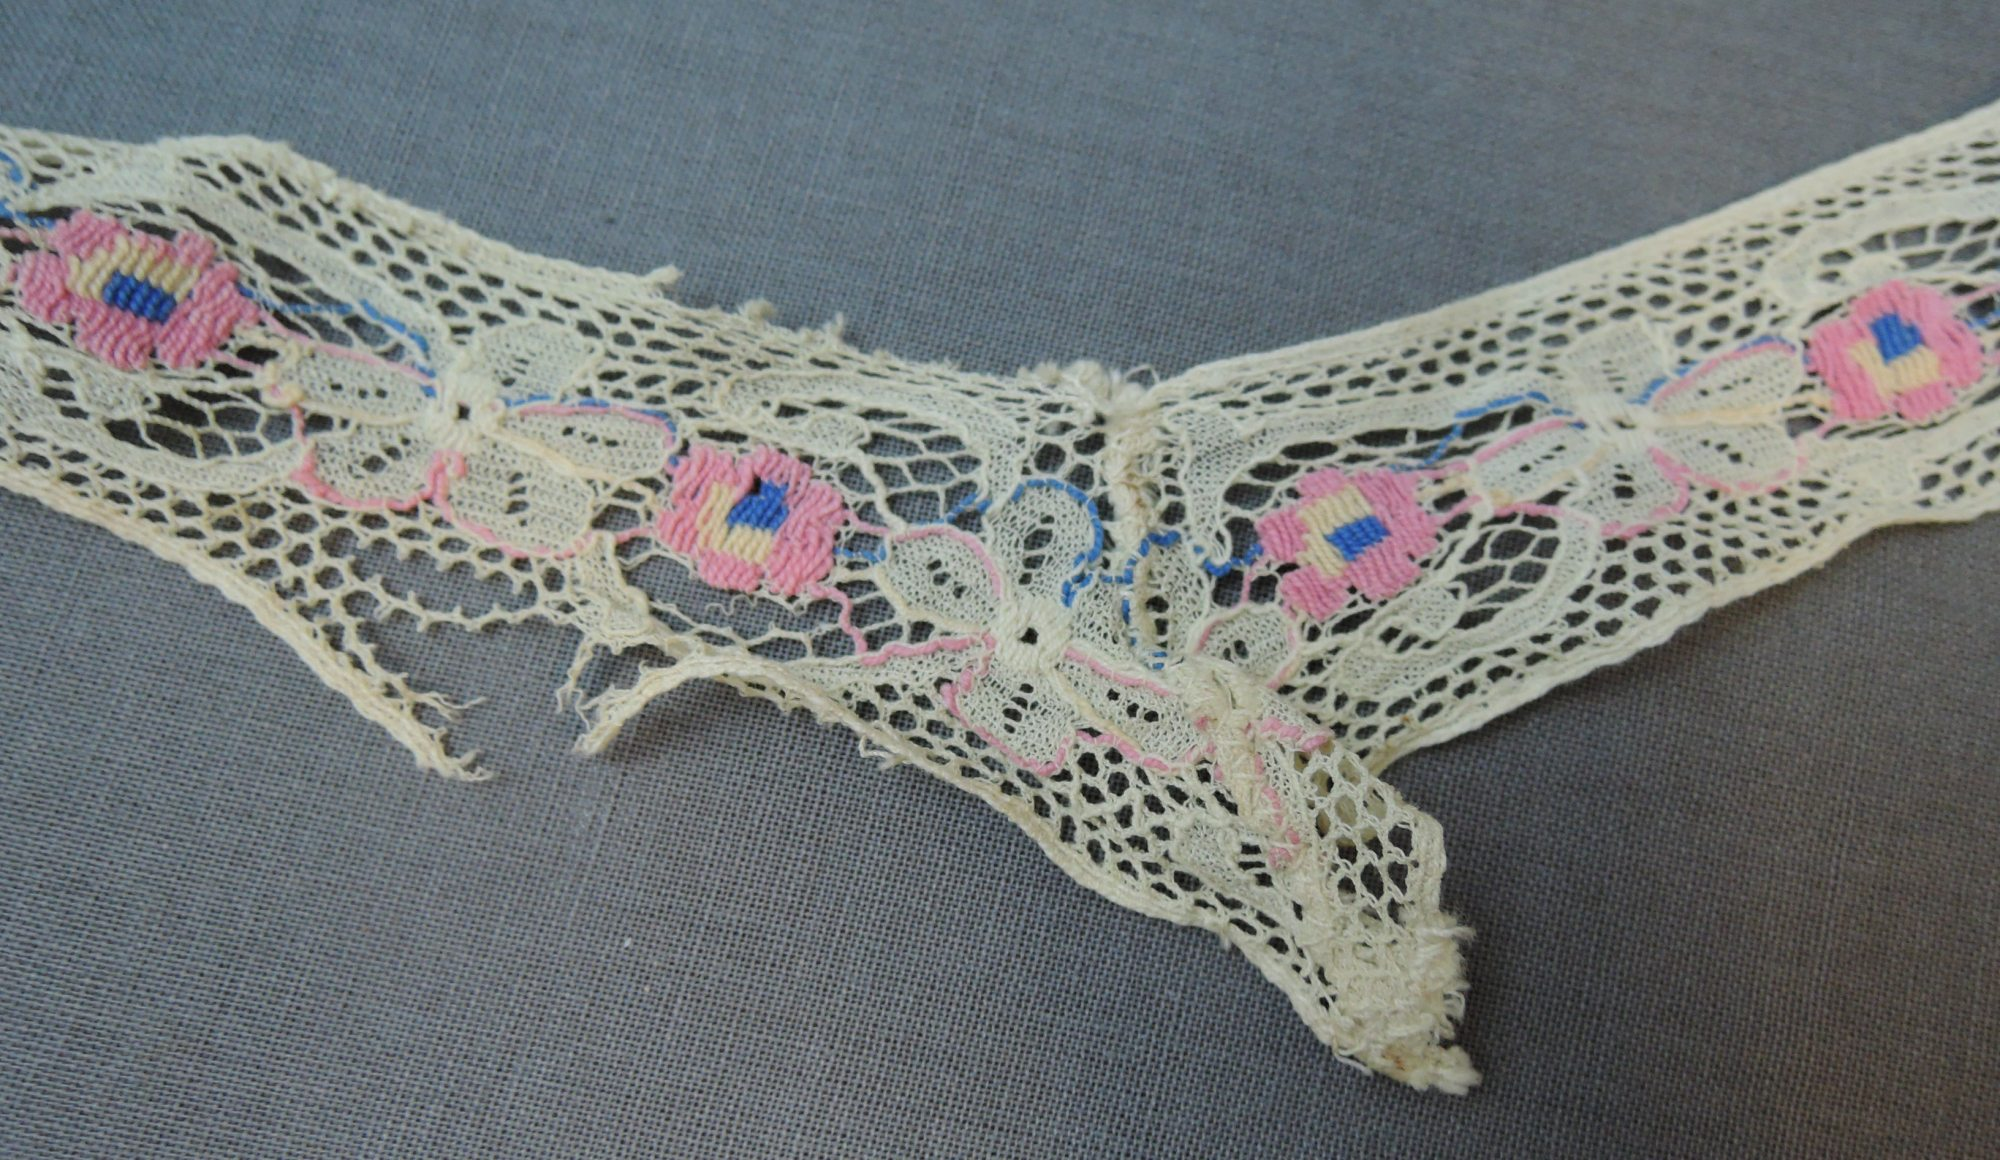 Vintage Embroidered Lace Trim, Pink & Blue Floral, 1930s 1940s Remnant